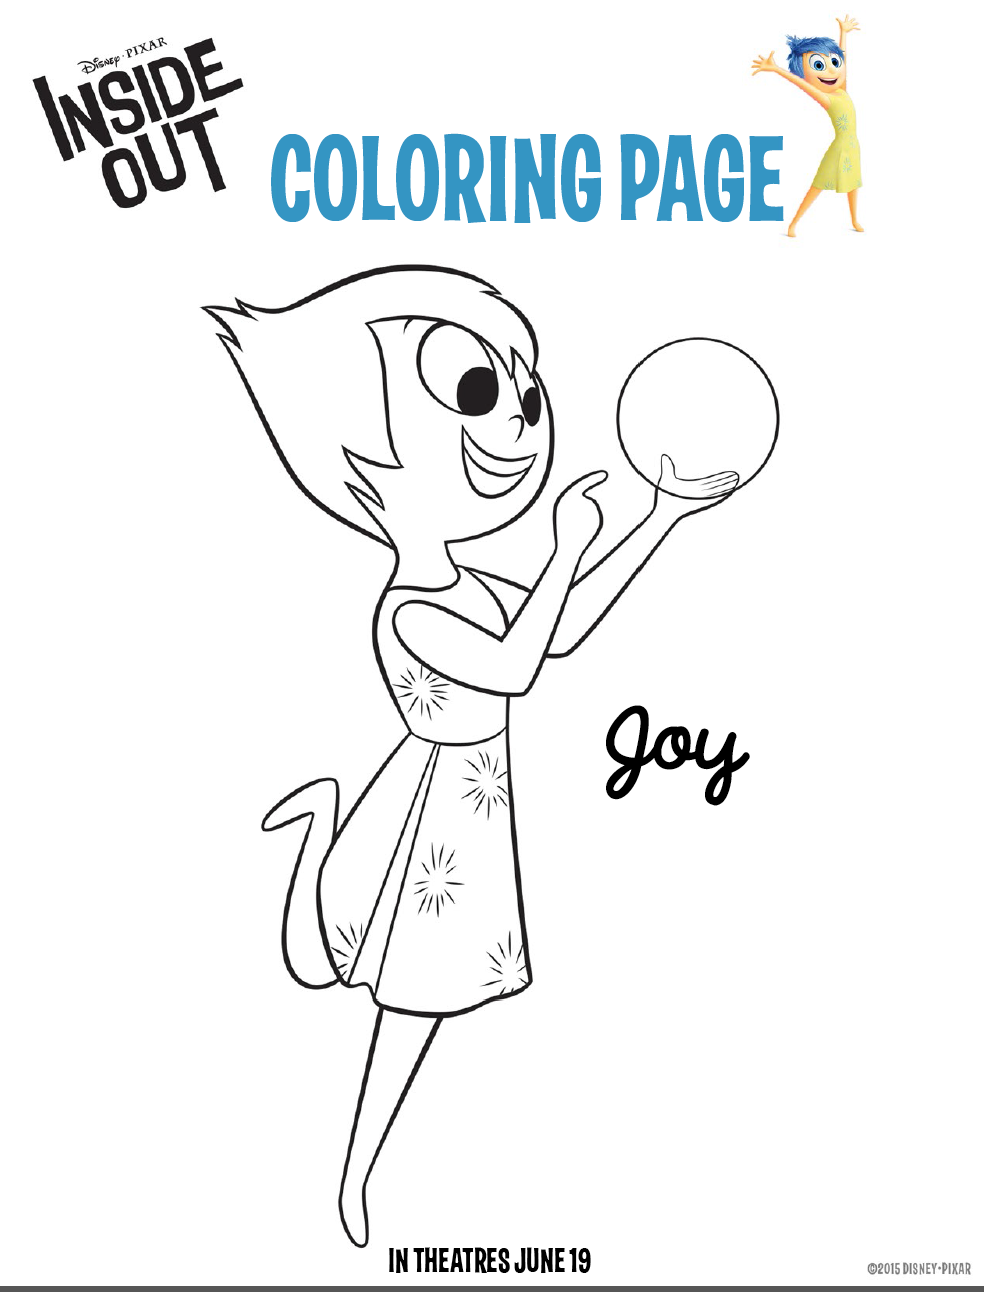 Inside Out Coloring Pages Free Downloads For Kids Insideoutevent Inside Out Coloring Pages Coloring Pages For Kids Coloring Pages